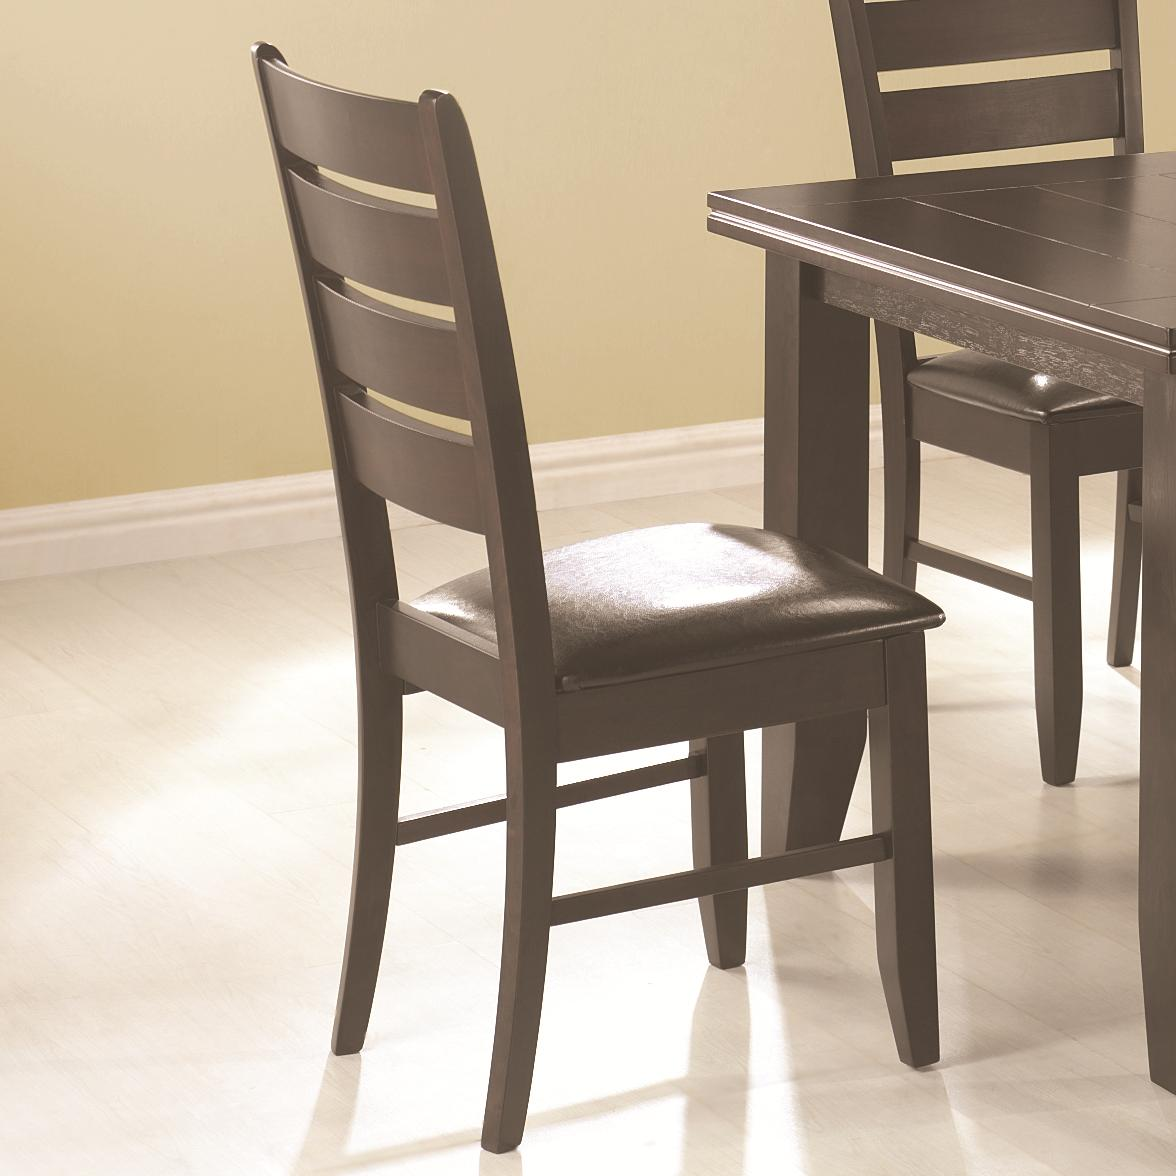 Dalila Dining Chair by Coaster at Northeast Factory Direct